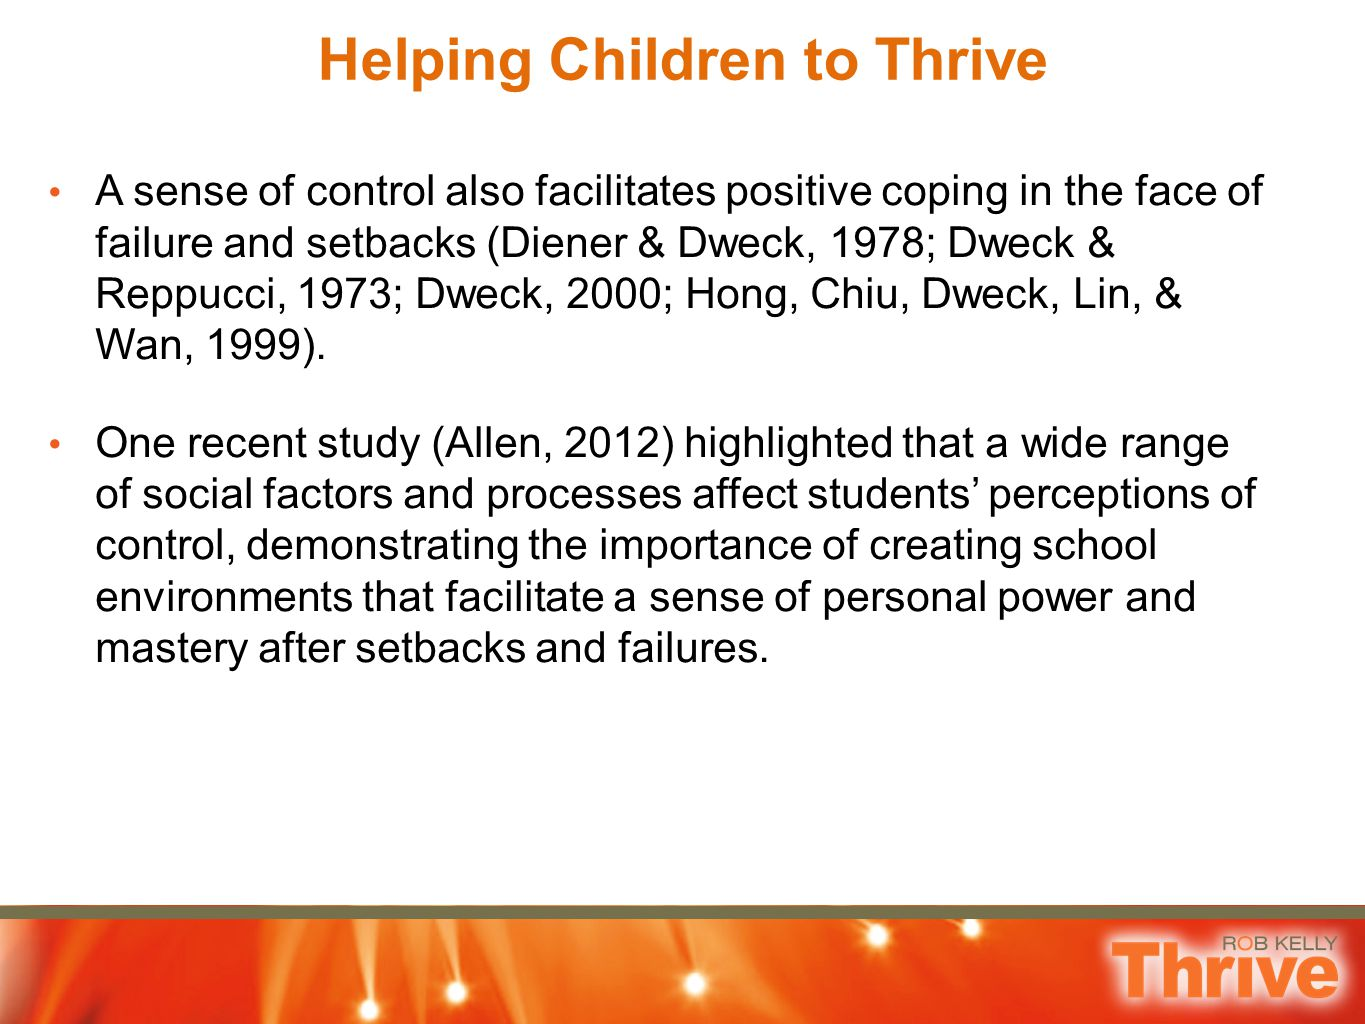 Helping Children to Thrive A sense of control also facilitates positive coping in the face of failure and setbacks (Diener & Dweck, 1978; Dweck & Reppucci, 1973; Dweck, 2000; Hong, Chiu, Dweck, Lin, & Wan, 1999).